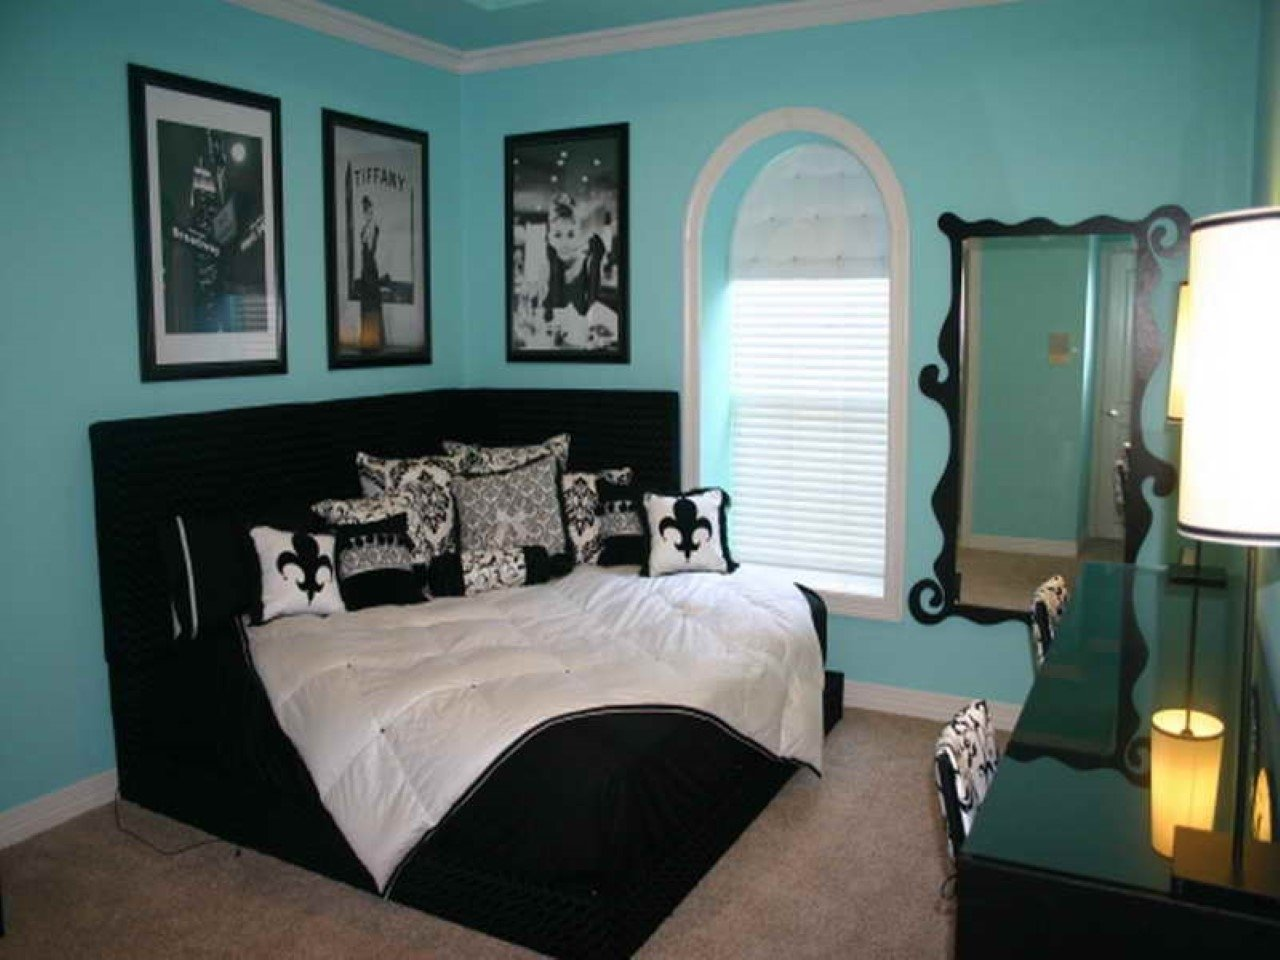 10 Lovable Blue And Black Bedroom Ideas black and blue bedroom designs bedroom dazzling black and white 2020